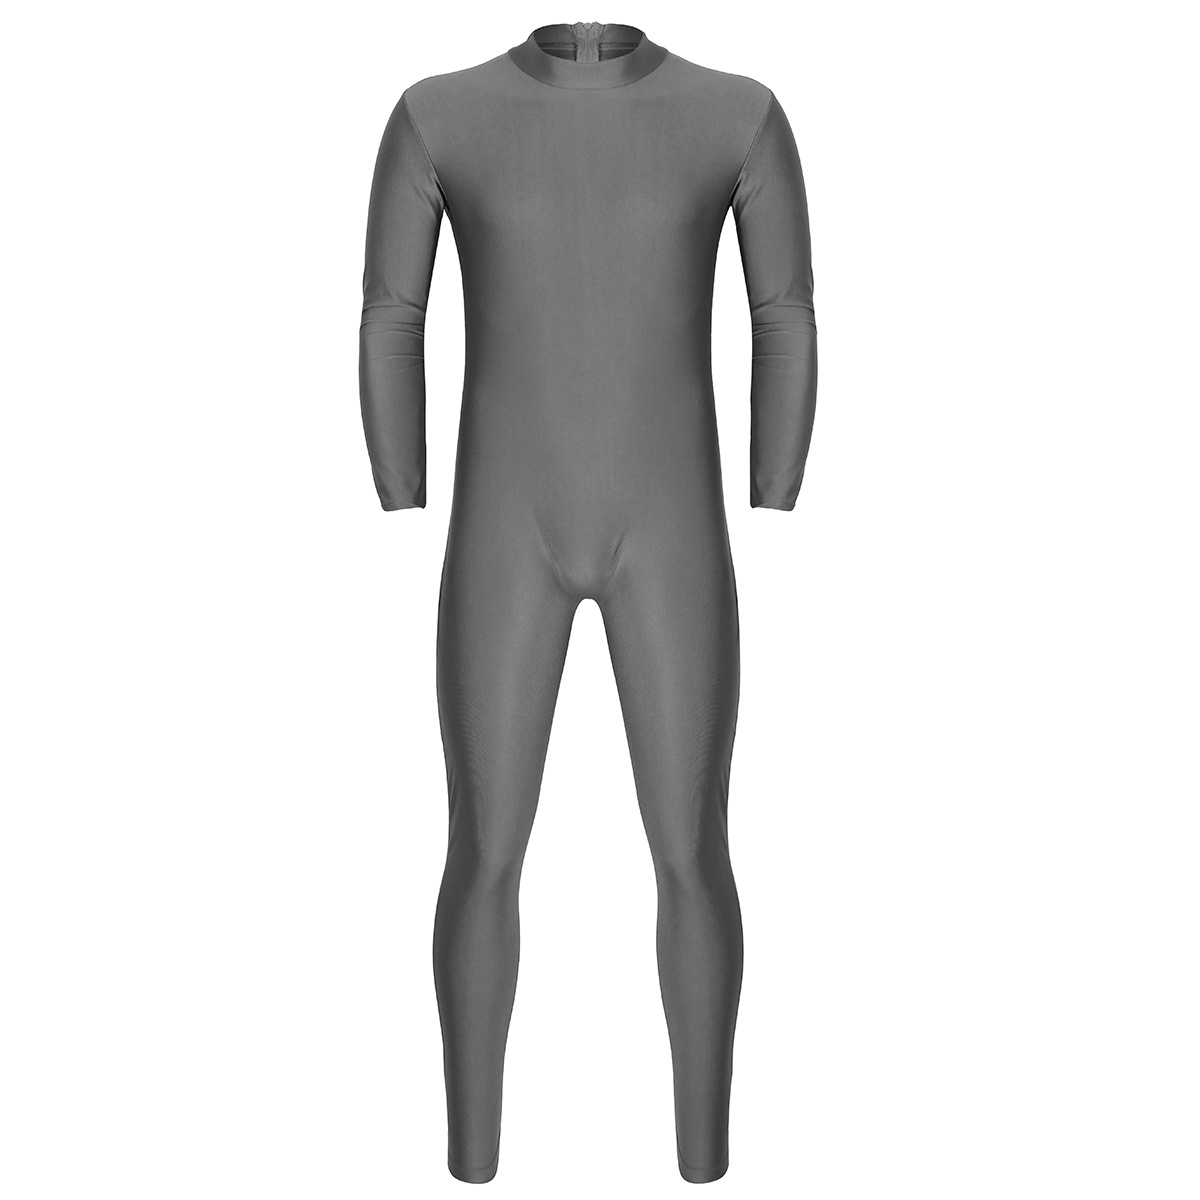 Mens Well Fit One Piece Leotards Long Sleeves Skinny Full-body Catsuit Adult Lycra Dancewear Bodysuit Gymnastics Workout Unitard 29